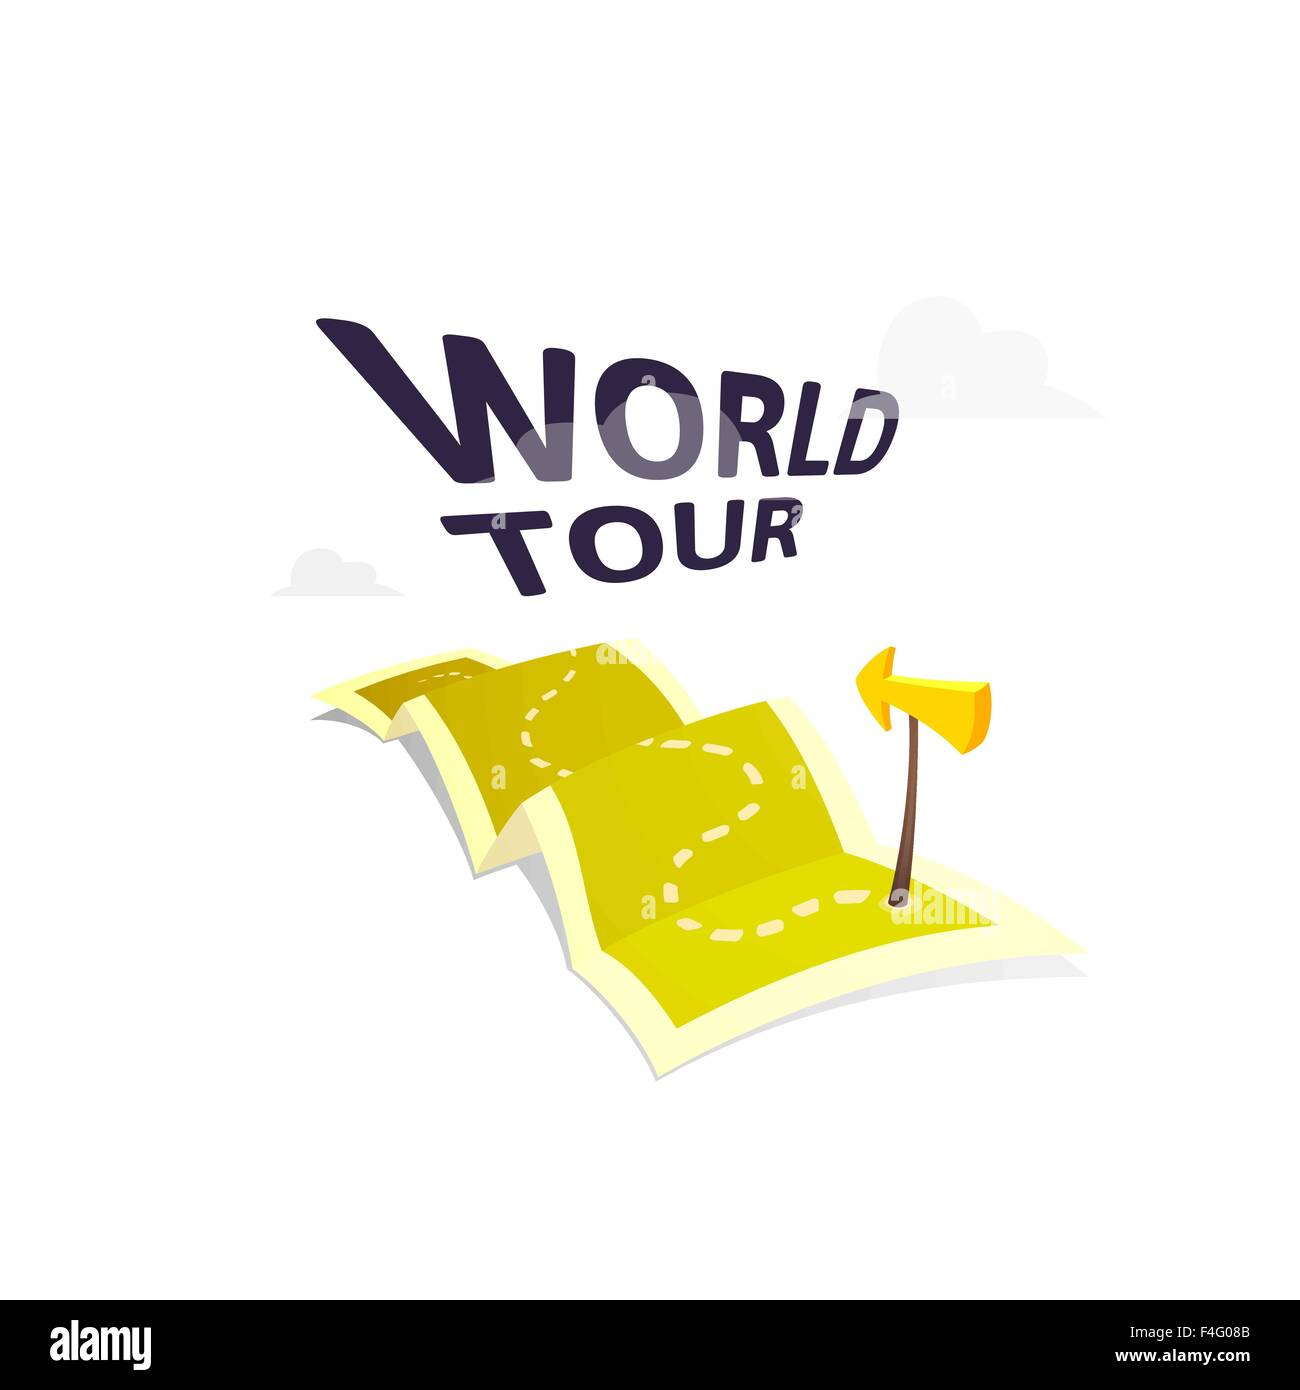 World tour concept logo isolated on white background long route in world tour concept logo isolated on white background long route in travel map with guide marker gumiabroncs Images